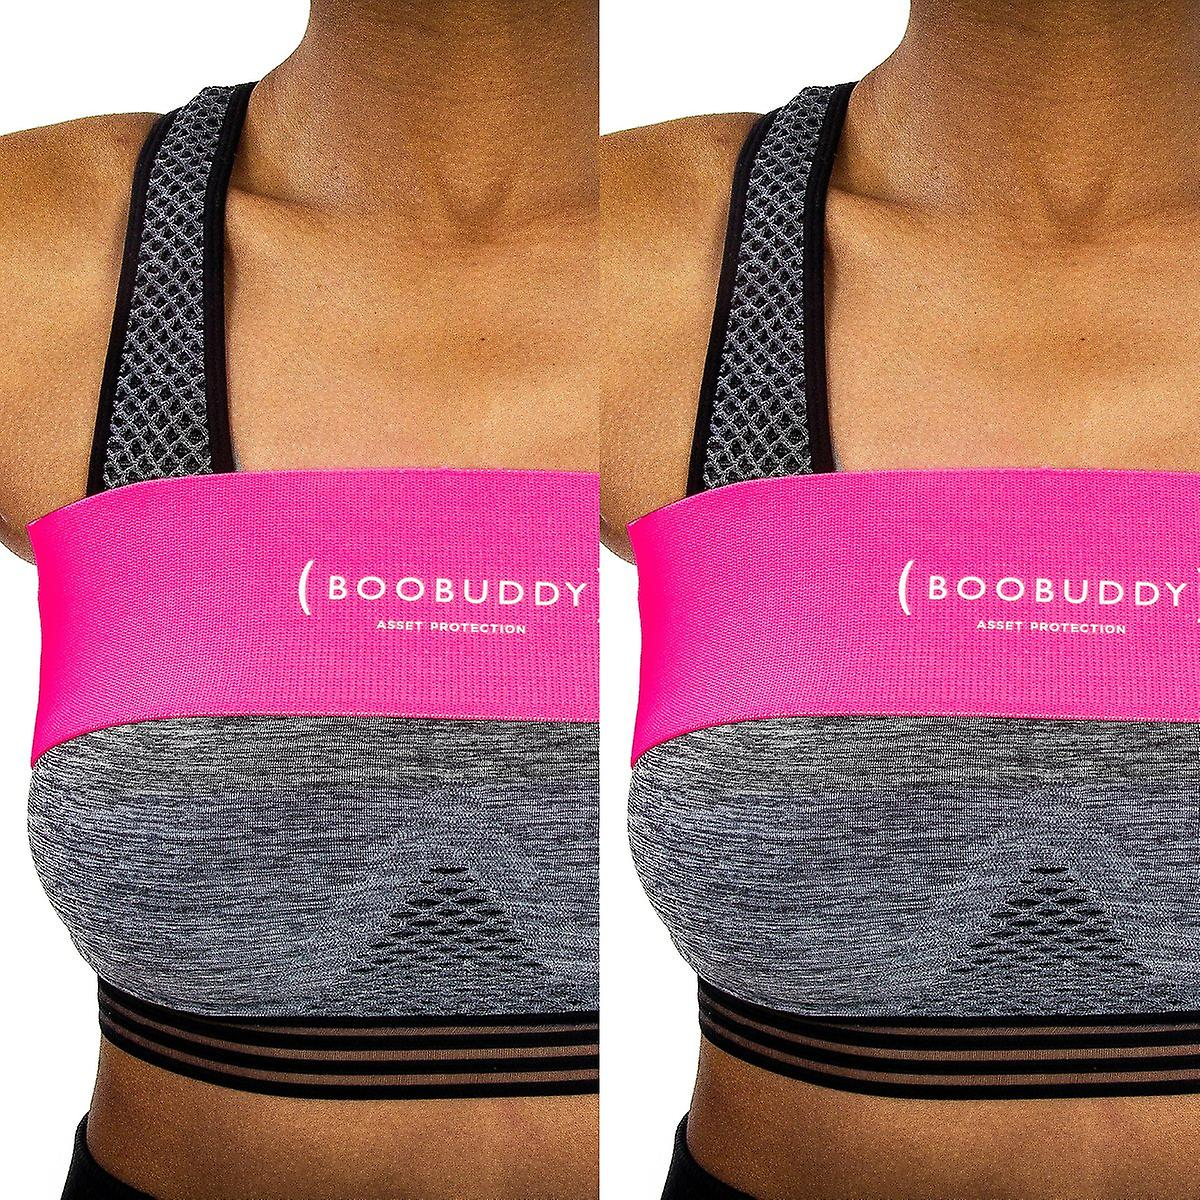 Boobuddy breast support band twin pack – pink